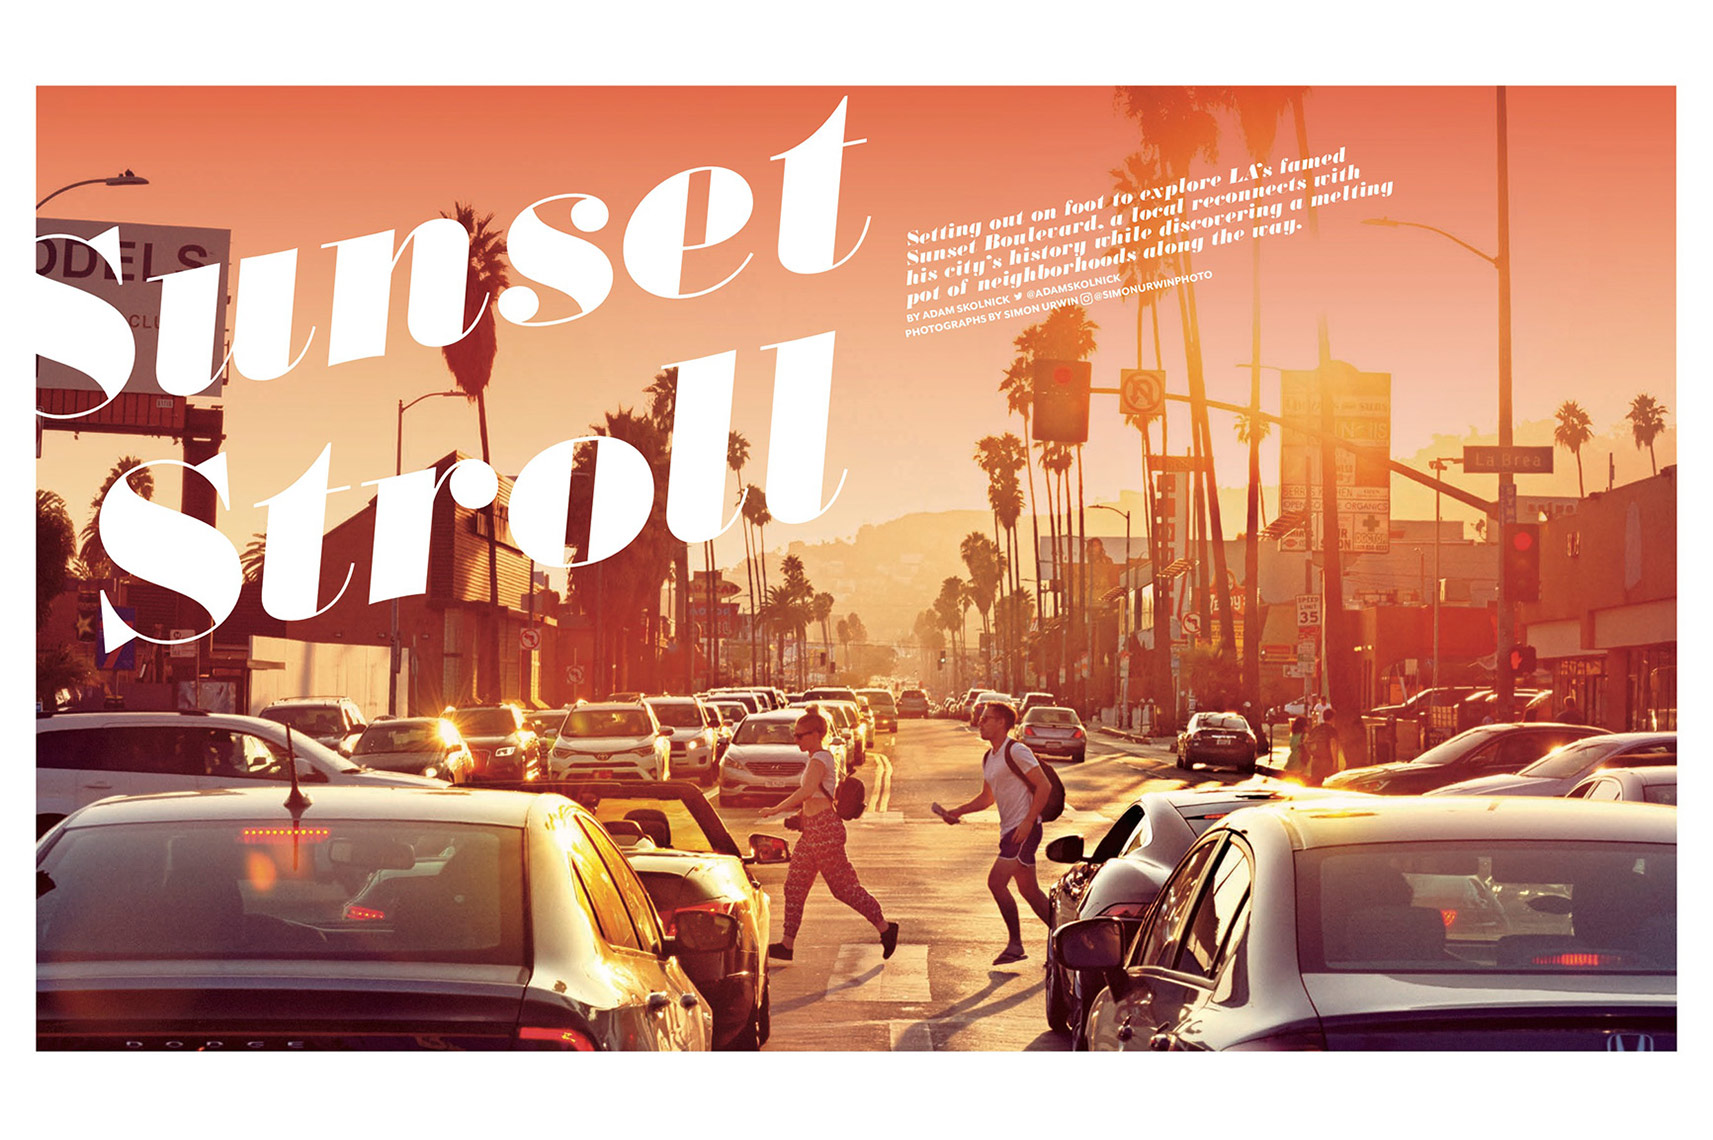 Los Angeles | LA | Sunset Blvd | Simon Urwin | Published Articles & Photography